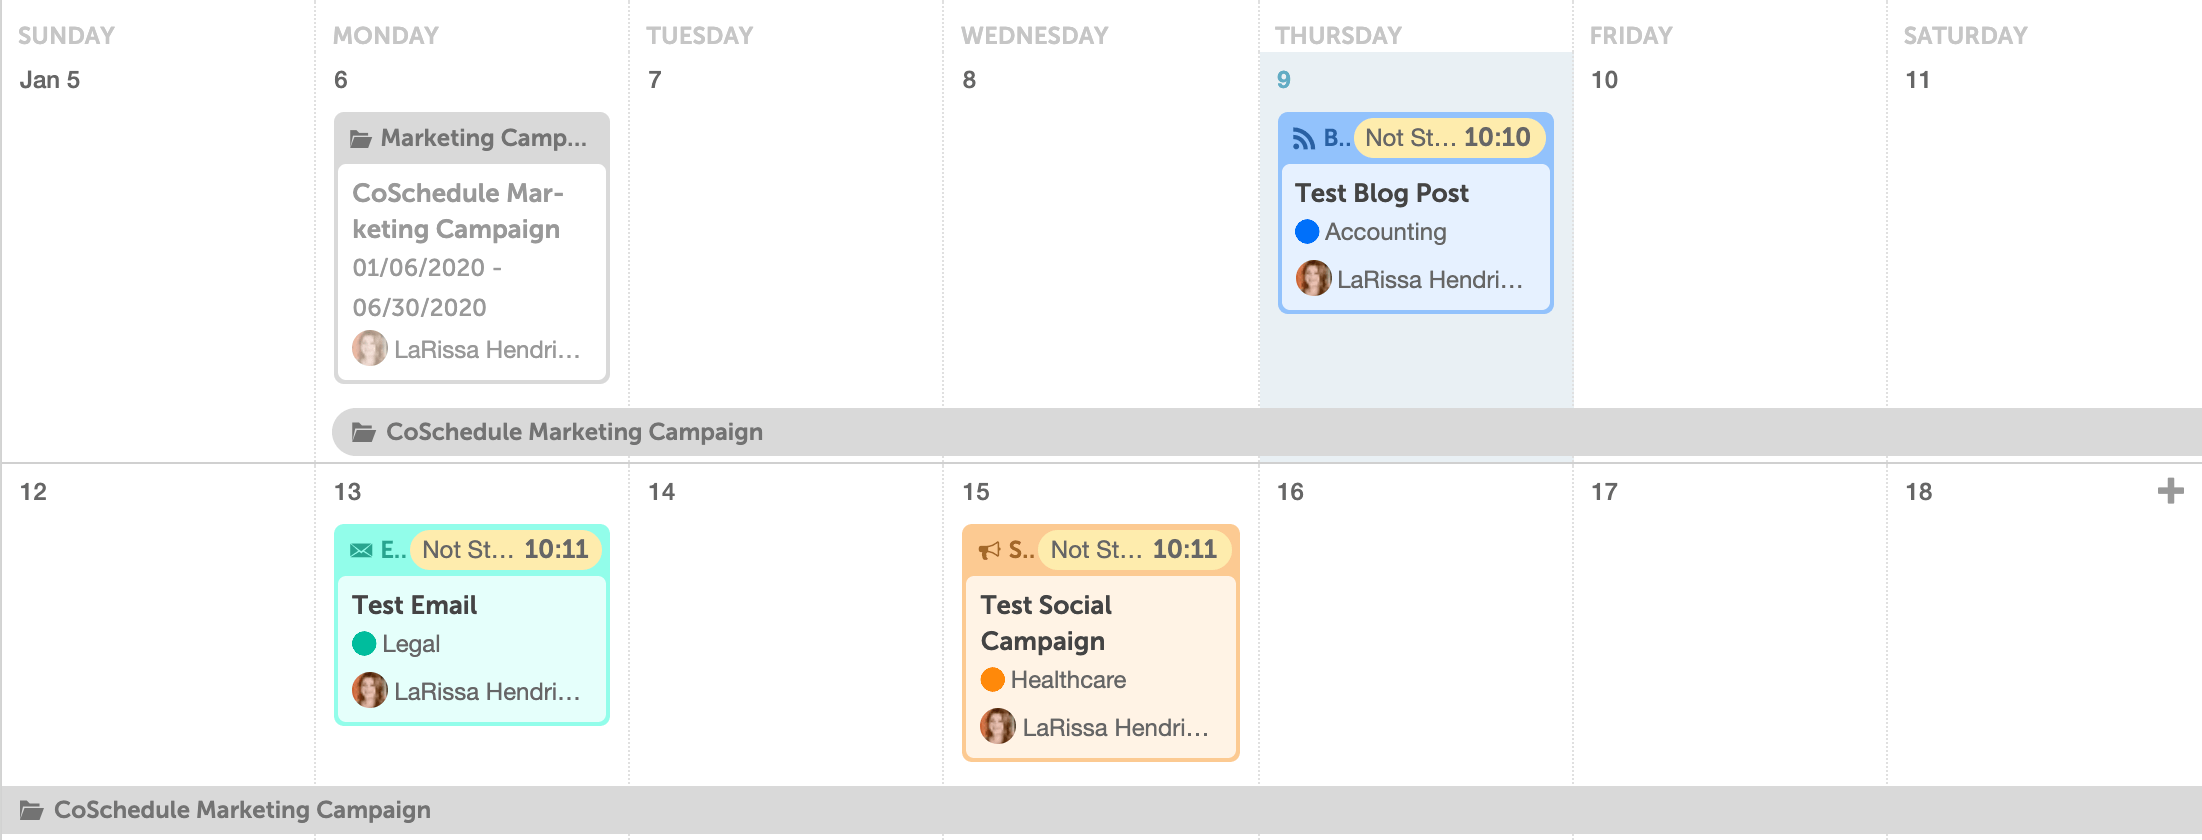 Projects On CoSchedule Calendar